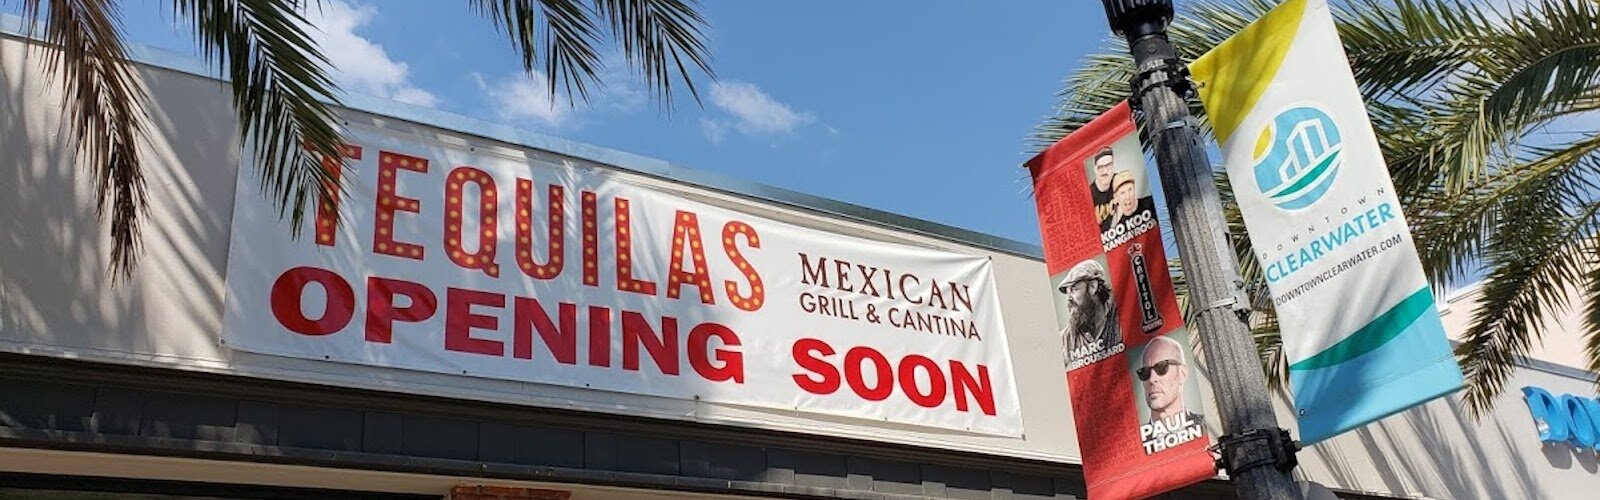 Tequila's Mexican Grill and Cantina is now open in downtown Clearwater.